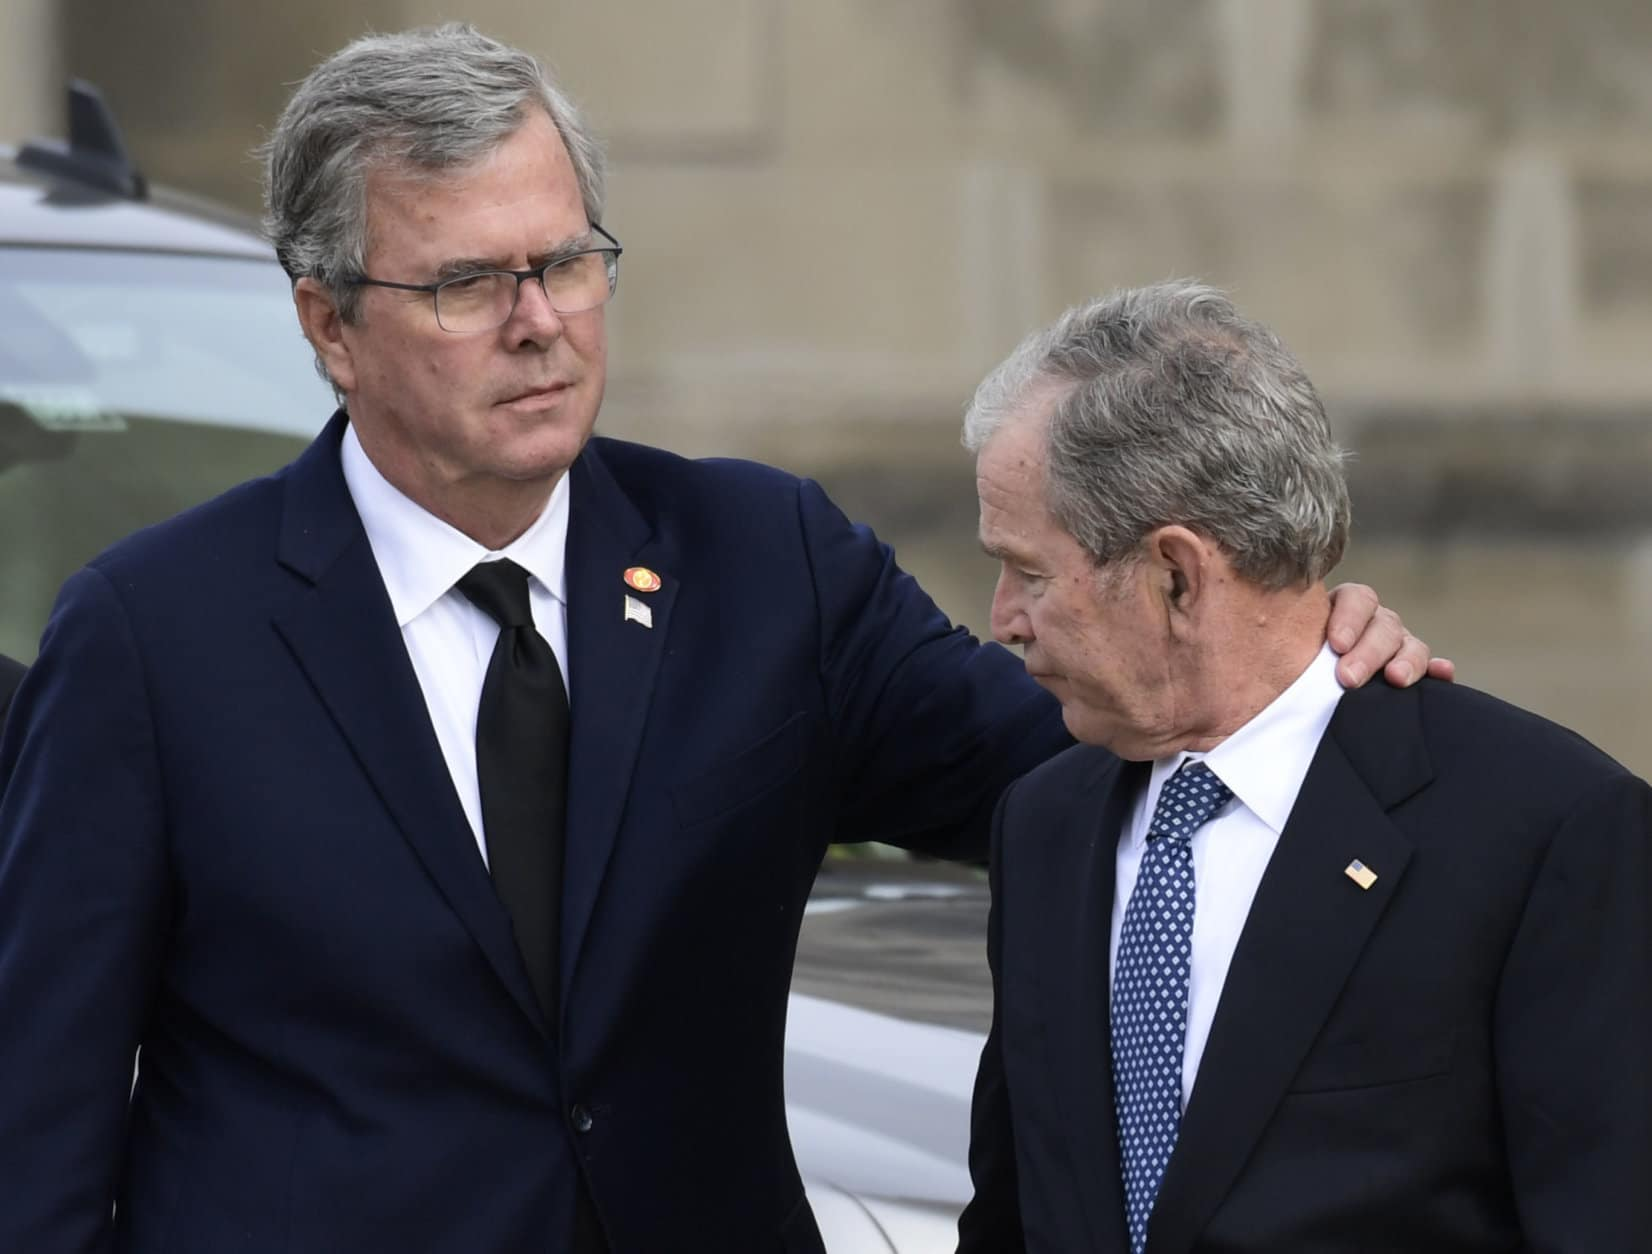 Former Florida Gov. Jeb Bush, left, reaches out to his brother, former President George W. Bush, right, as they arrive to watch the casket of former President George H.W. Bush arrive at the National Cathedral, Wednesday, Dec. 5, 2018, in Washington, for a State Funeral. (AP Photo/Susan Walsh)